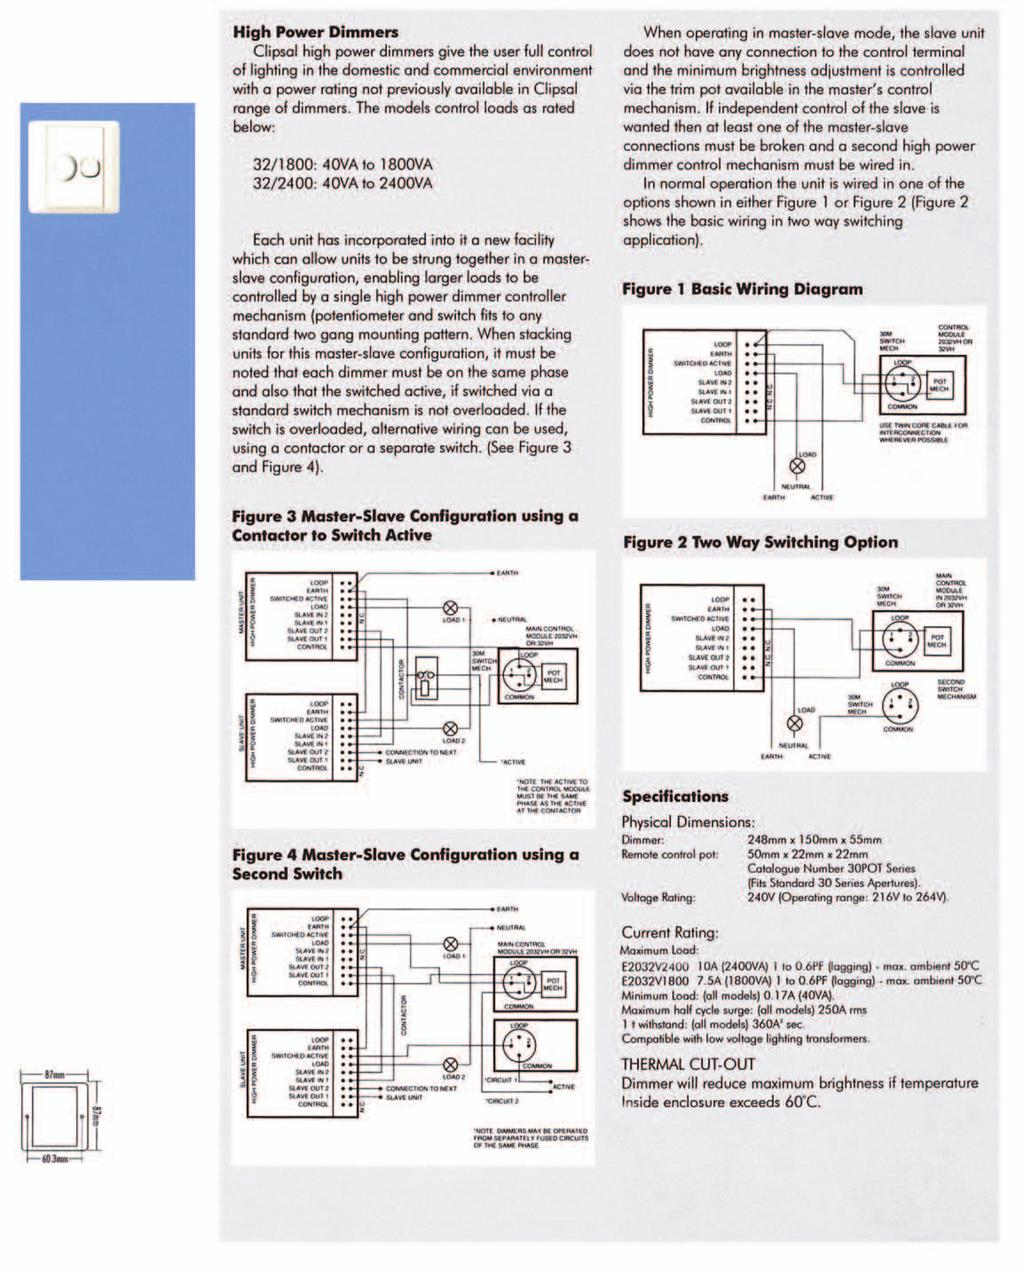 For Truly Rich Cosmopolitan Homes Pdf 110v 220v Light Dimmer Circuit With Active Reset High Power Emc Compliant